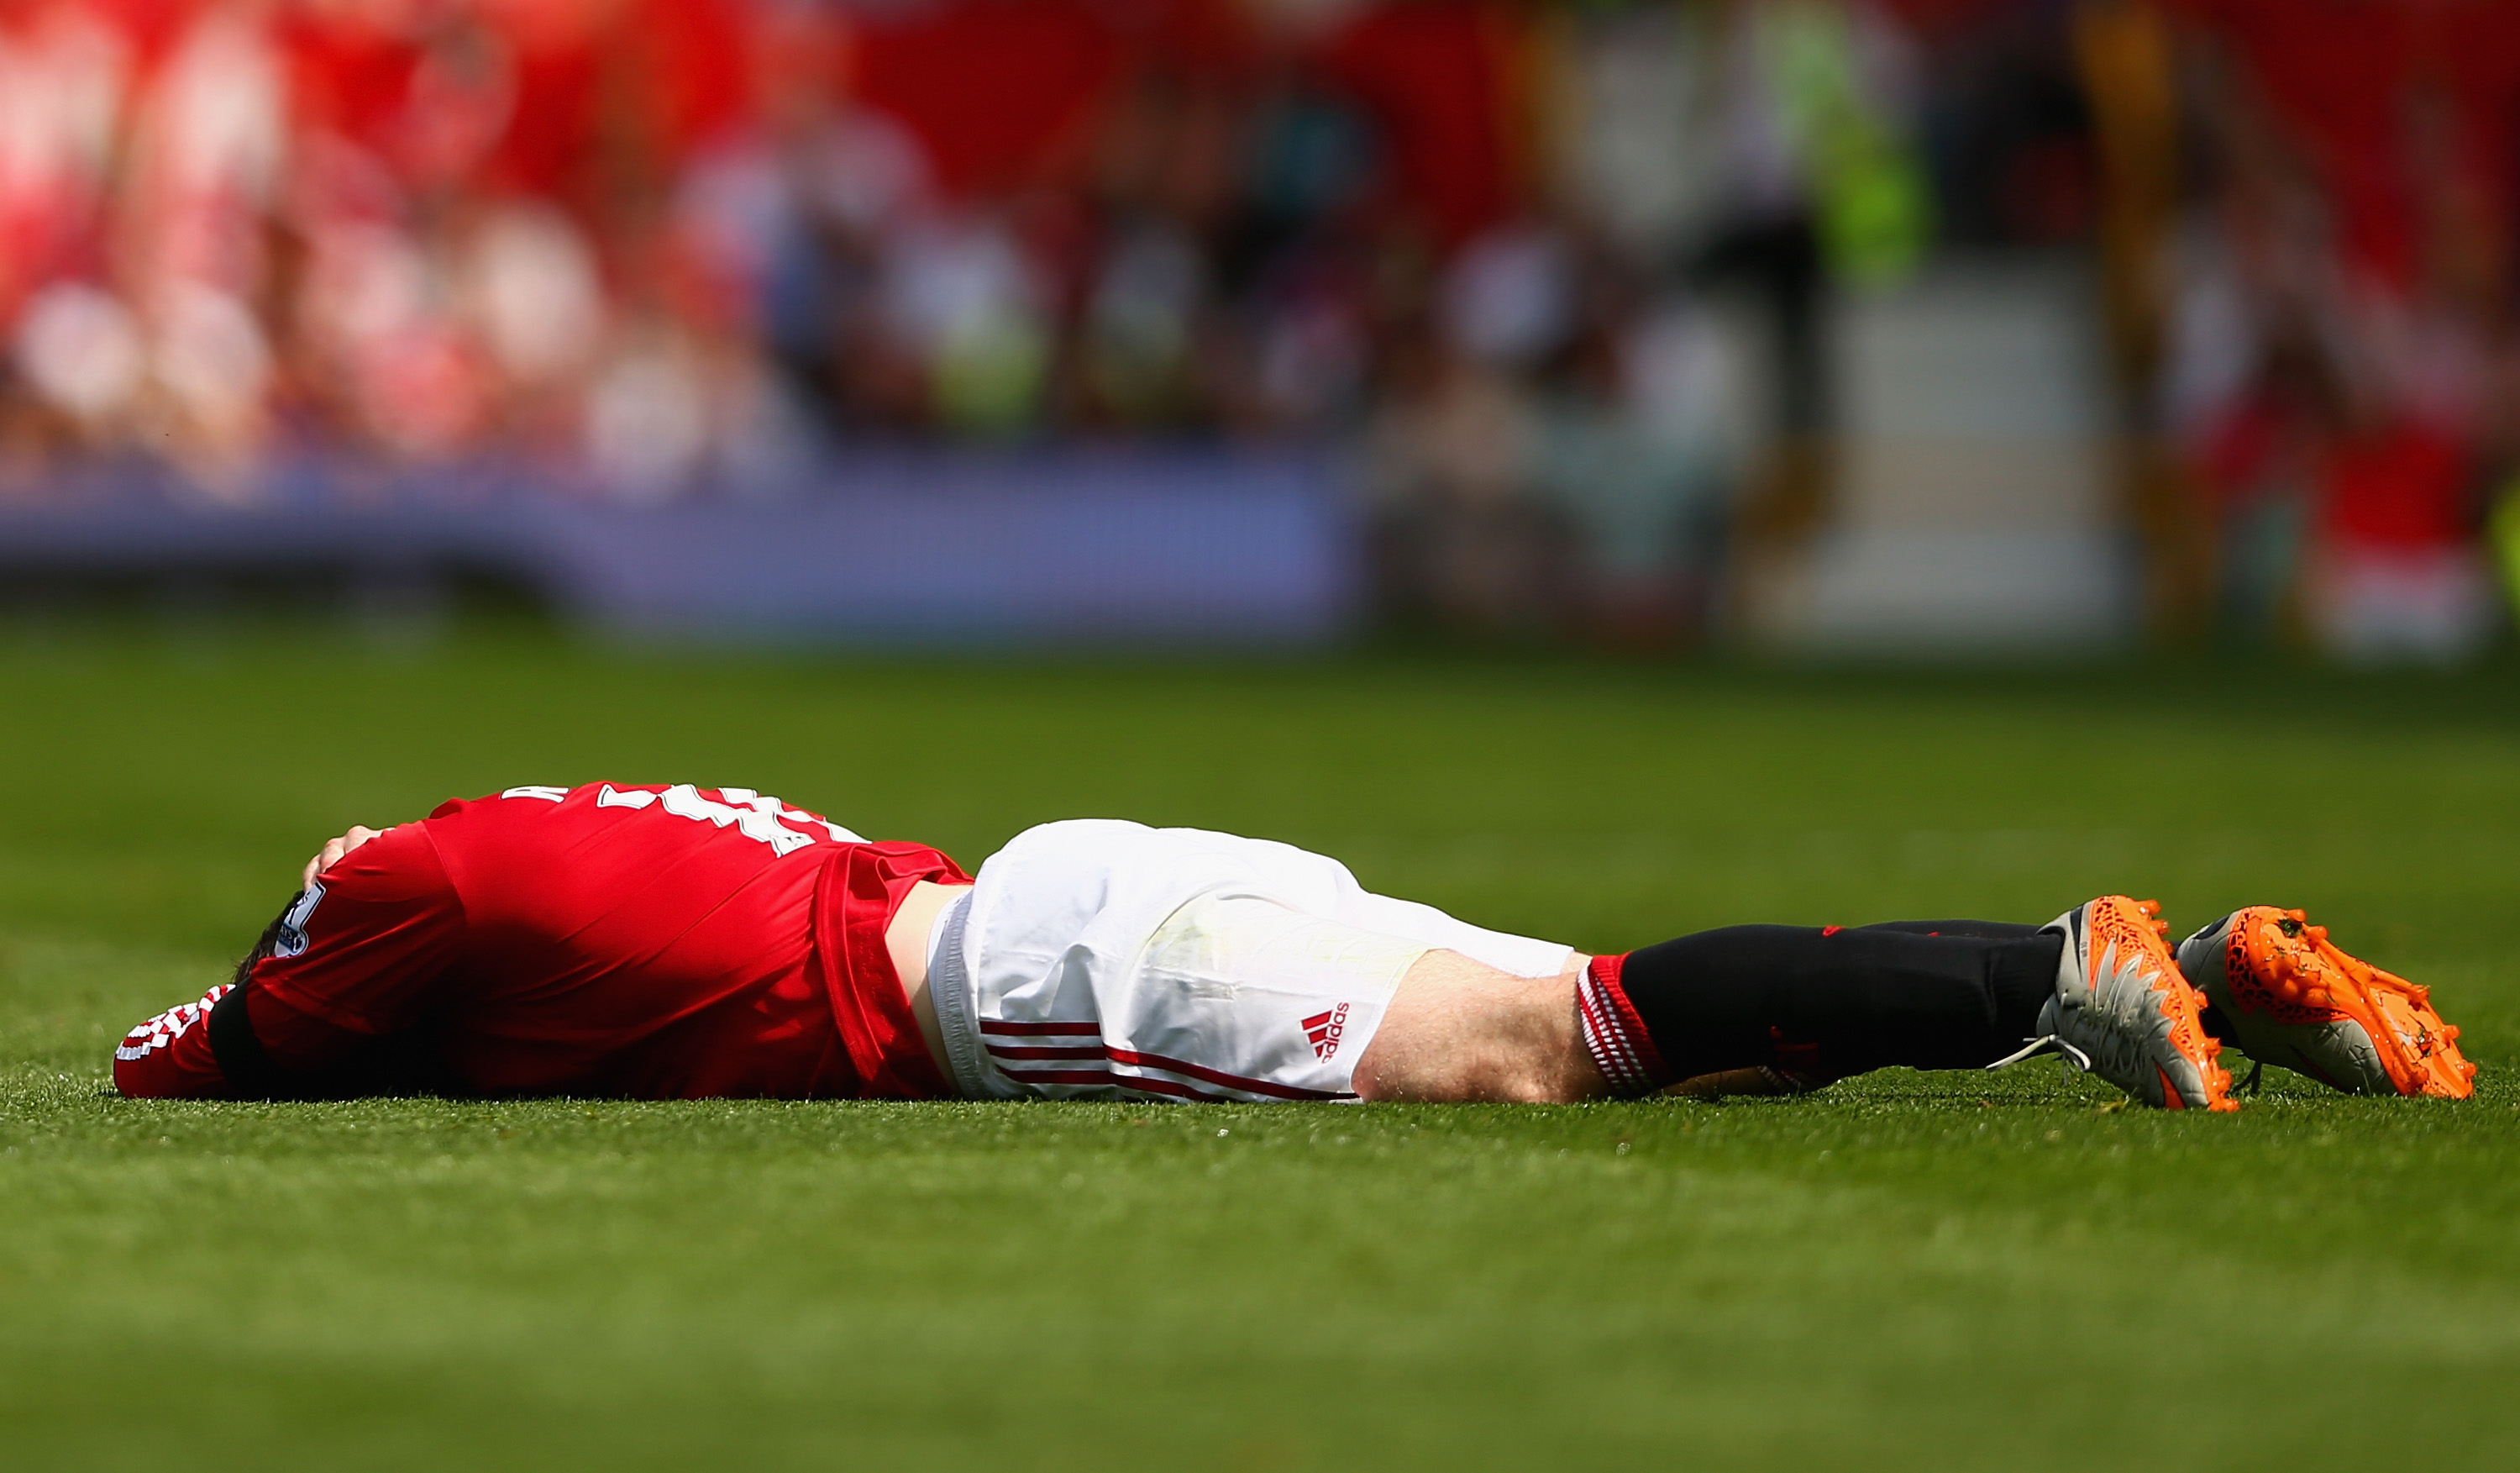 Manchester United's reliance on Wayne Rooney may be their undoing